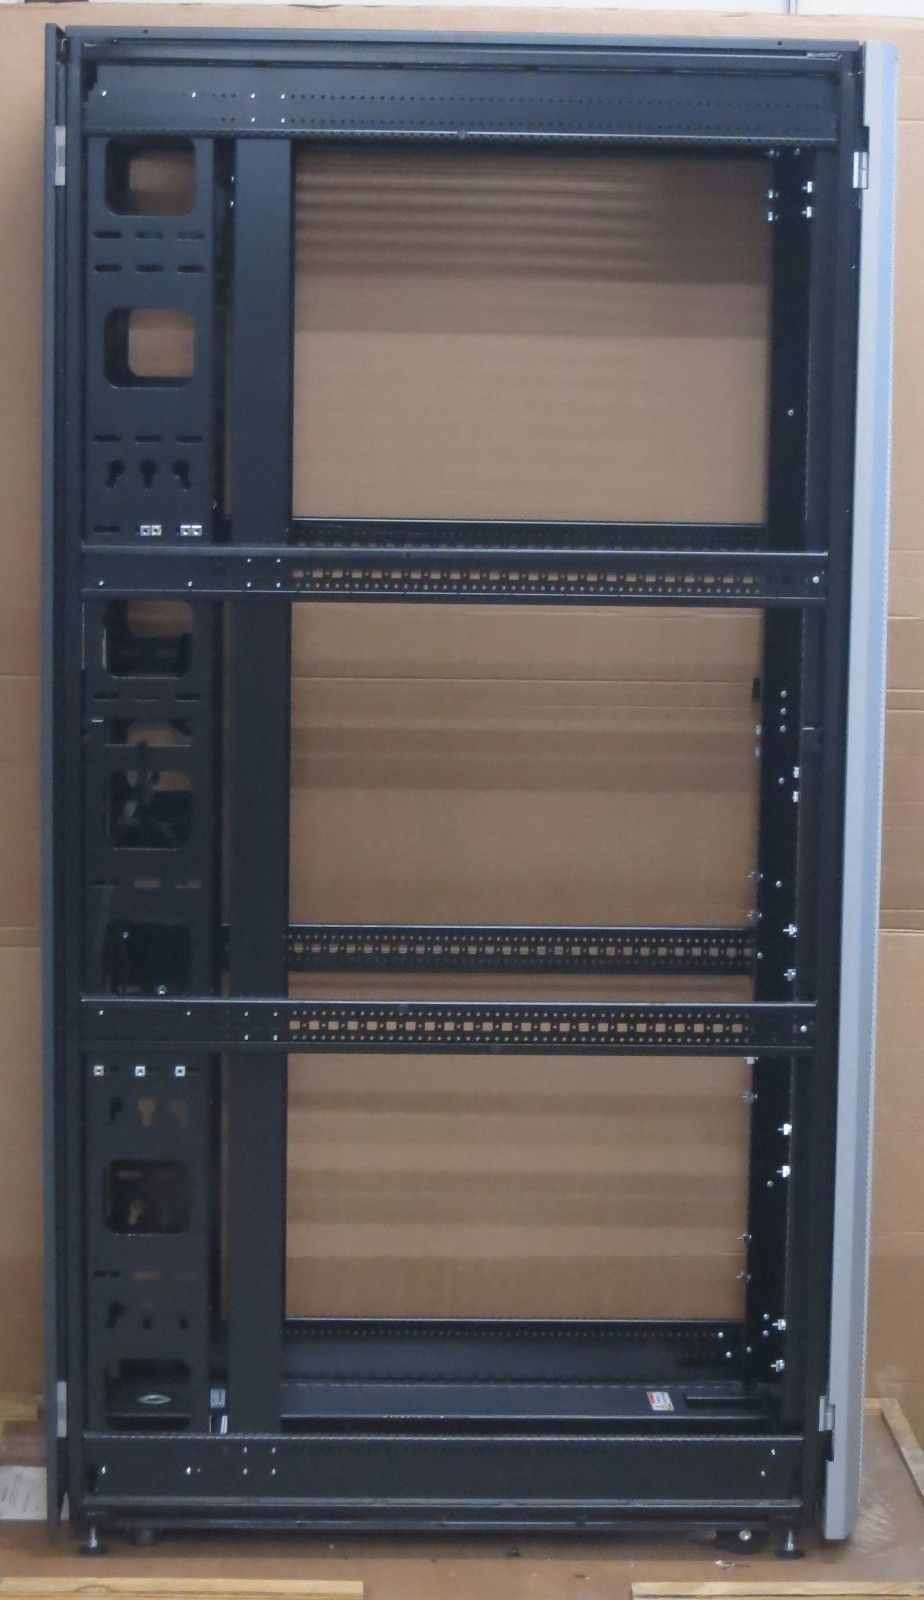 Cisco R Series R42610 42u Rack Ucs2 Int Server Enclosure